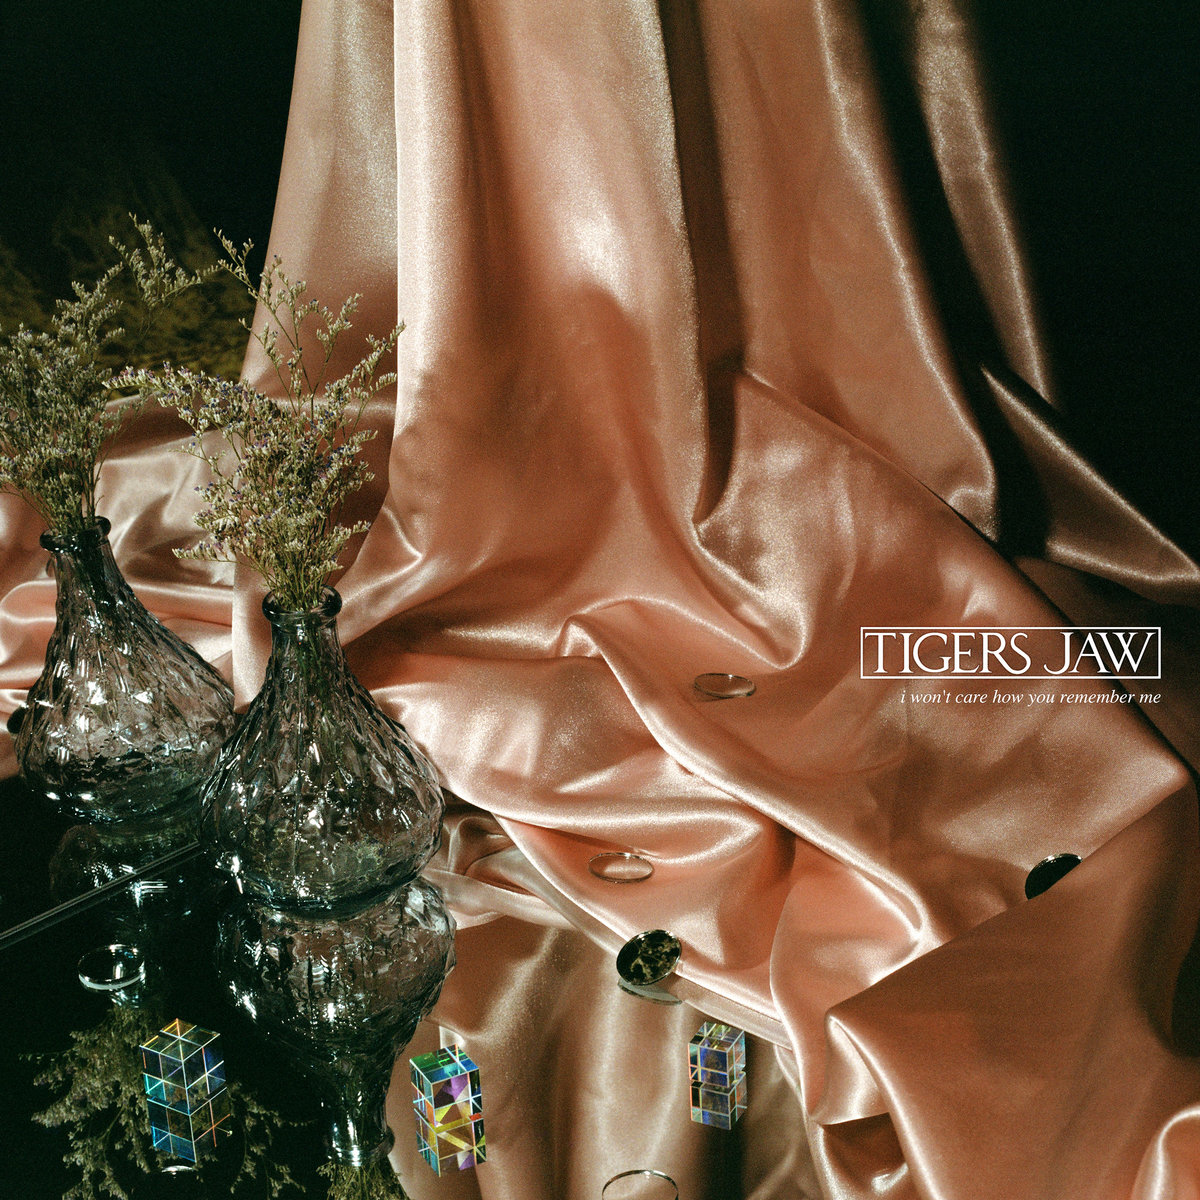 Tigers Jaw - I Won't Care How You Remember Me LP